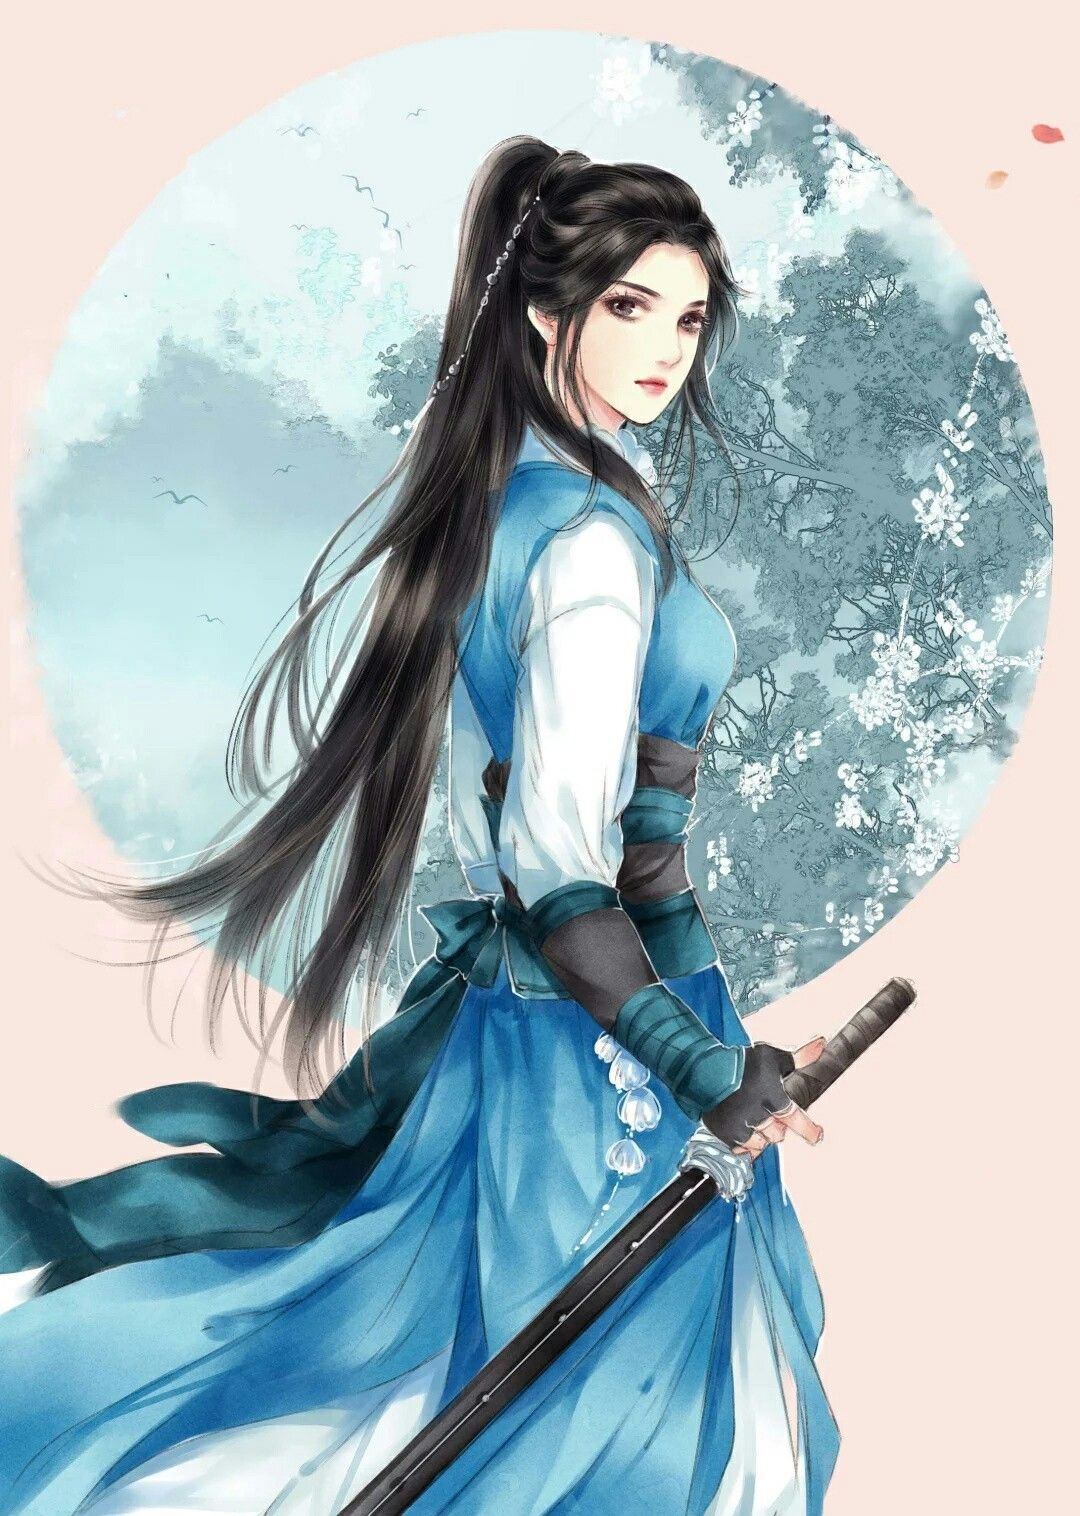 Reyna Delanoy Anime Warrior Chinese Art Girl Anime Drawings